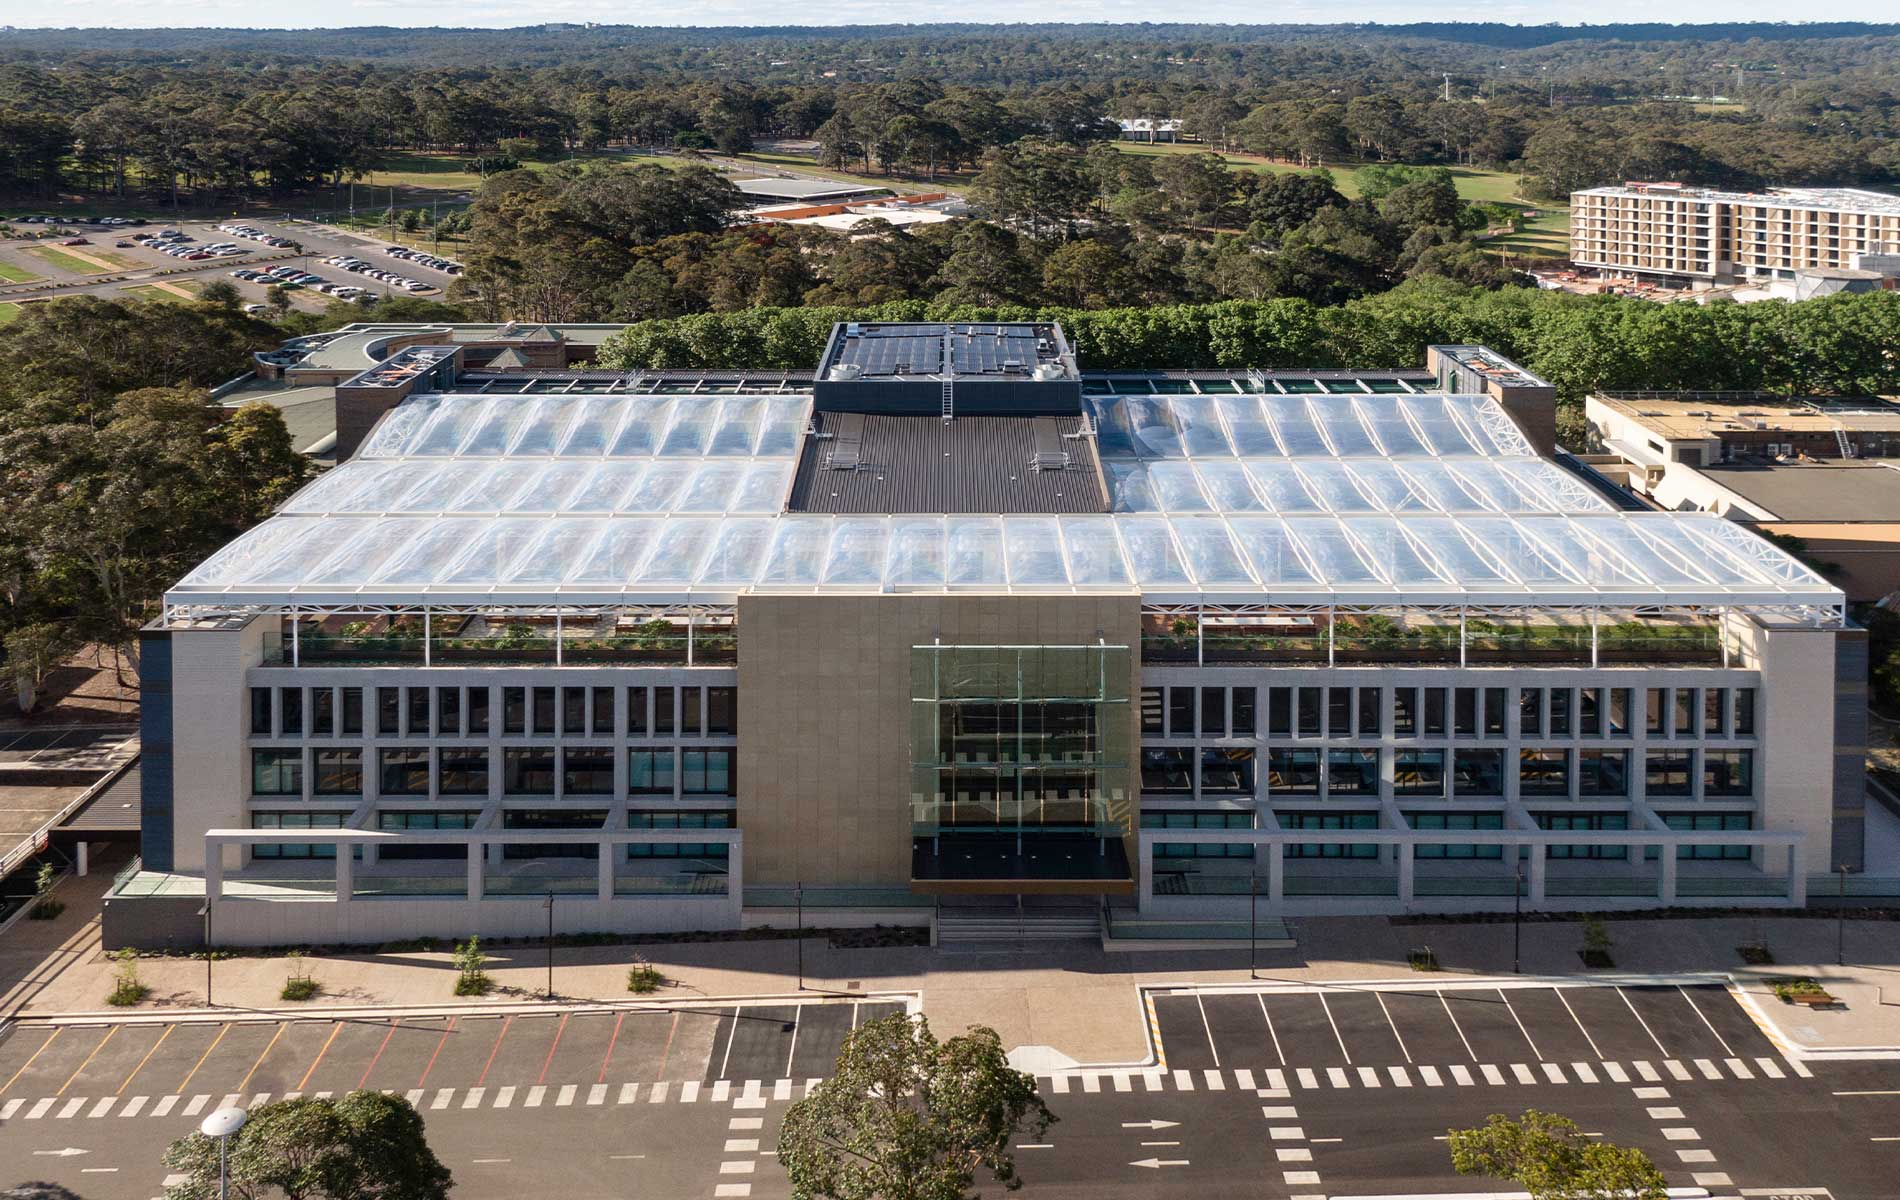 Macquarie University Arts Precinct ETFE Roof